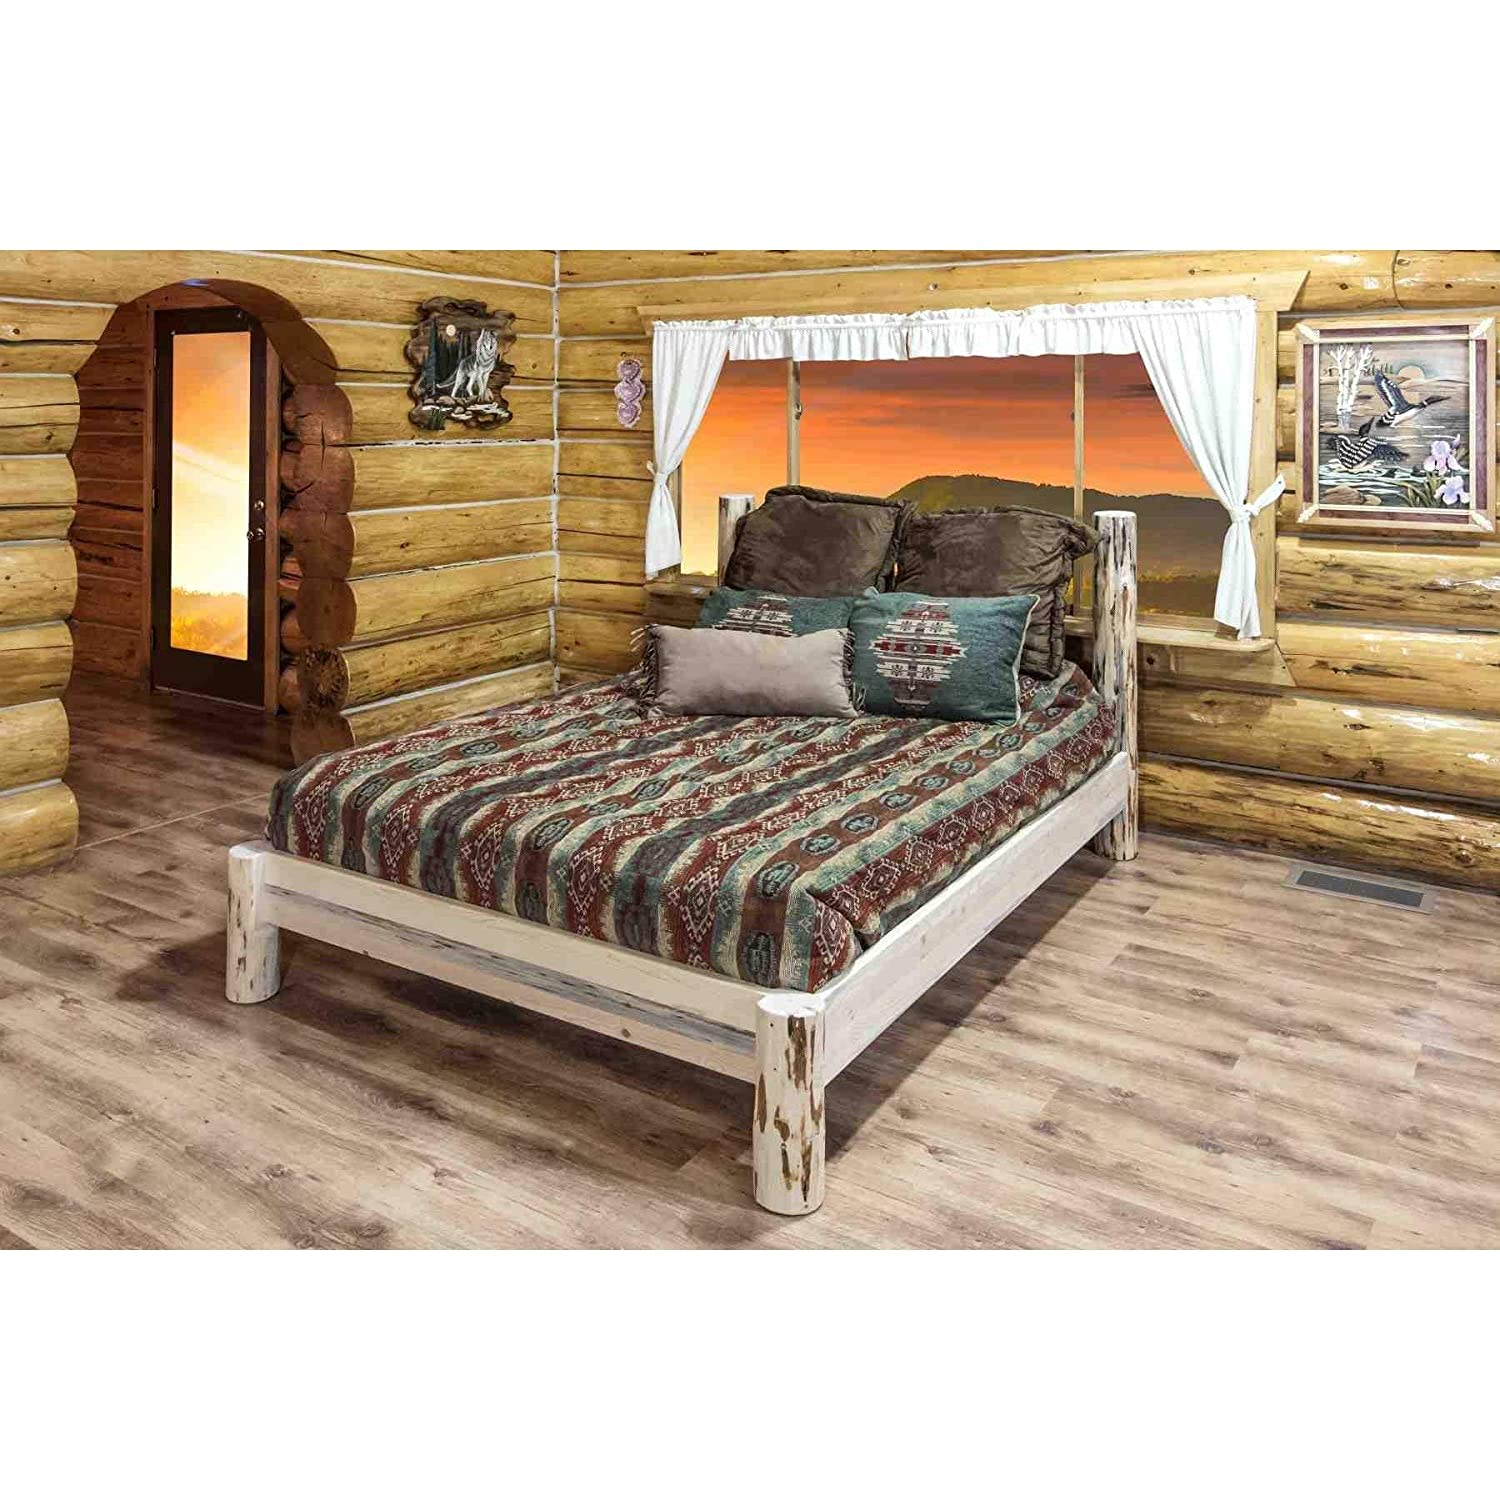 Amazon.com: Montana Woodworks - Montana Collection Twin Platform Bed: Kitchen & Dining